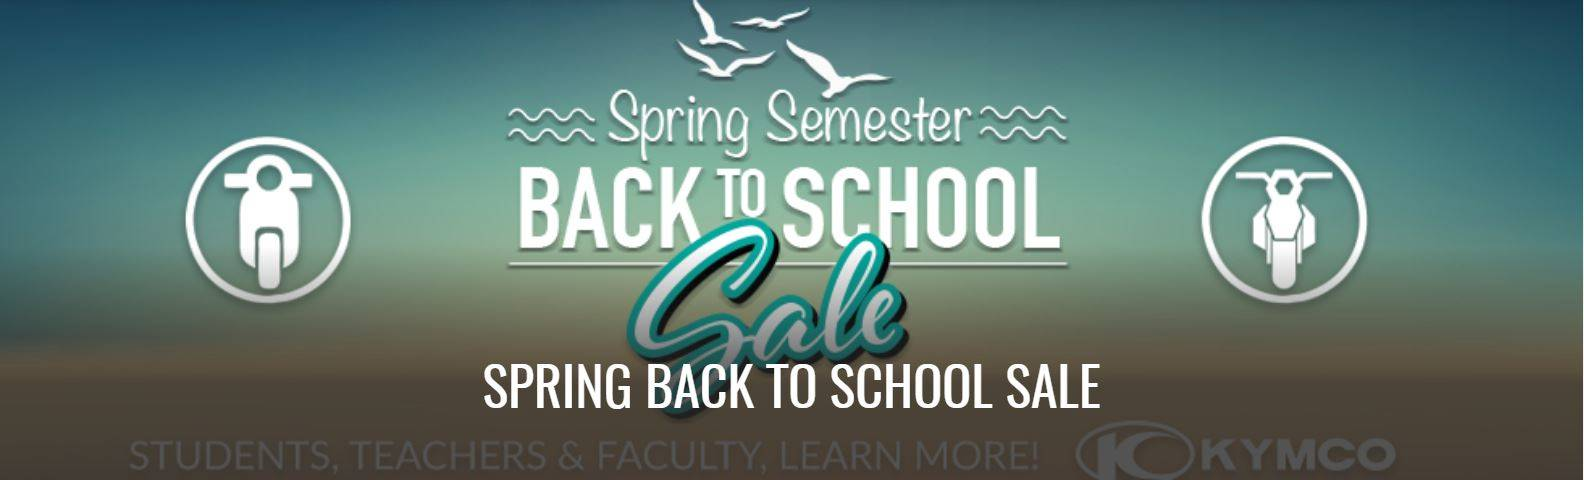 Kymco Spring Semester Back to School Sale